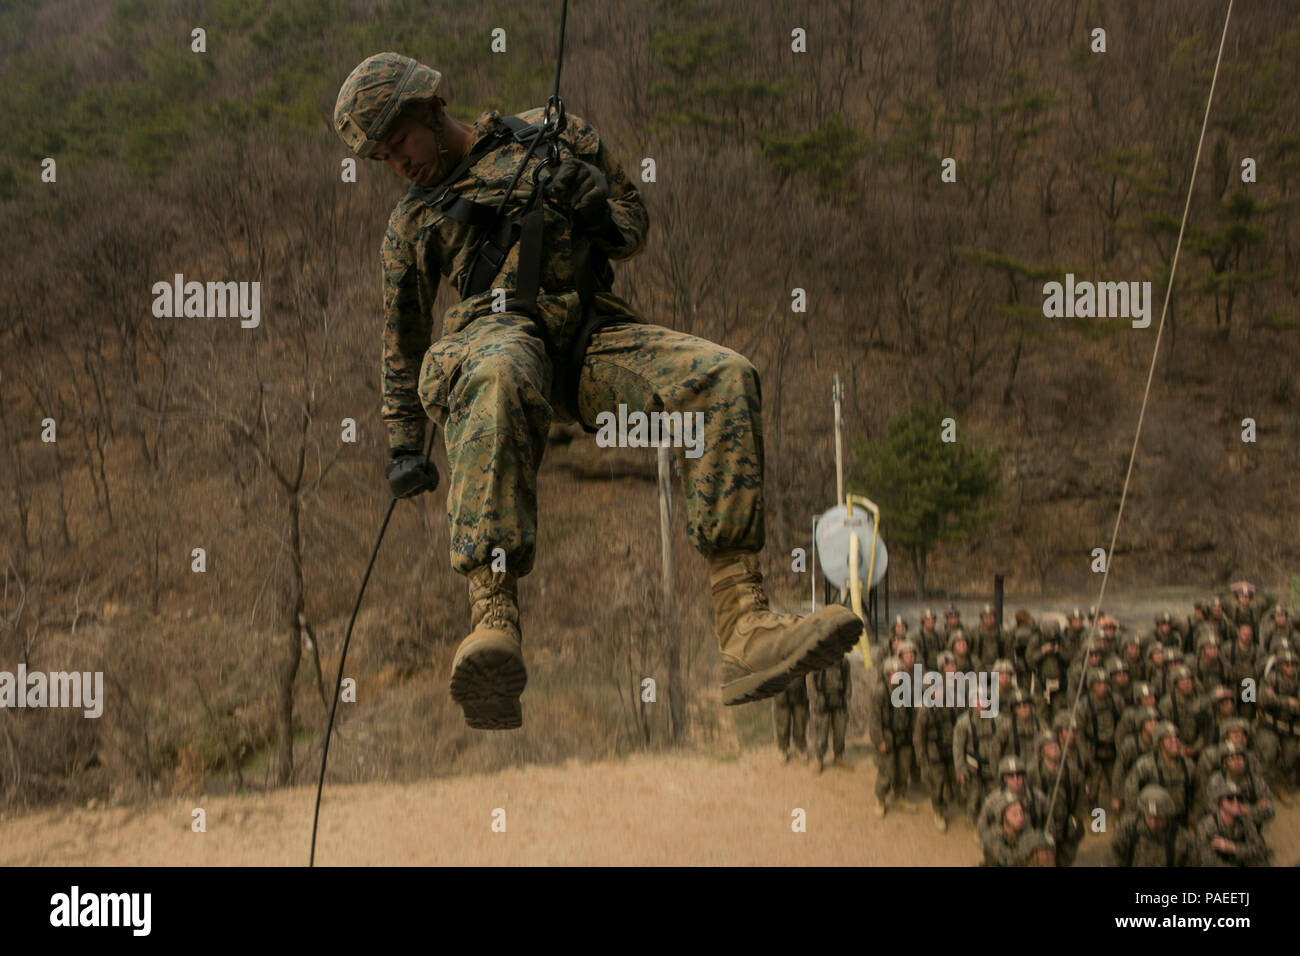 """U.S. Marine Corps Lance Cpl. Yeilen Fernandez, a rifleman with Bravo Company, 1st Battalion, 3rd Marine Regiment, also known as """"The Lava Dogs"""", practices rappelling techniques at the Republic of Korea (ROK) Marine Corps Ranger Course as a part of the Korea Marine Exchange Program (KMEP) in South Korea, March 29, 2016. KMEP is a program designed to increase interoperability and camaraderie between U.S. Marines and ROK marines. The alliance between the United States and the Republic of Korea has grown ever stronger based upon the shared interests and common values of both nations. Lance Cpl. Fe - Stock Image"""